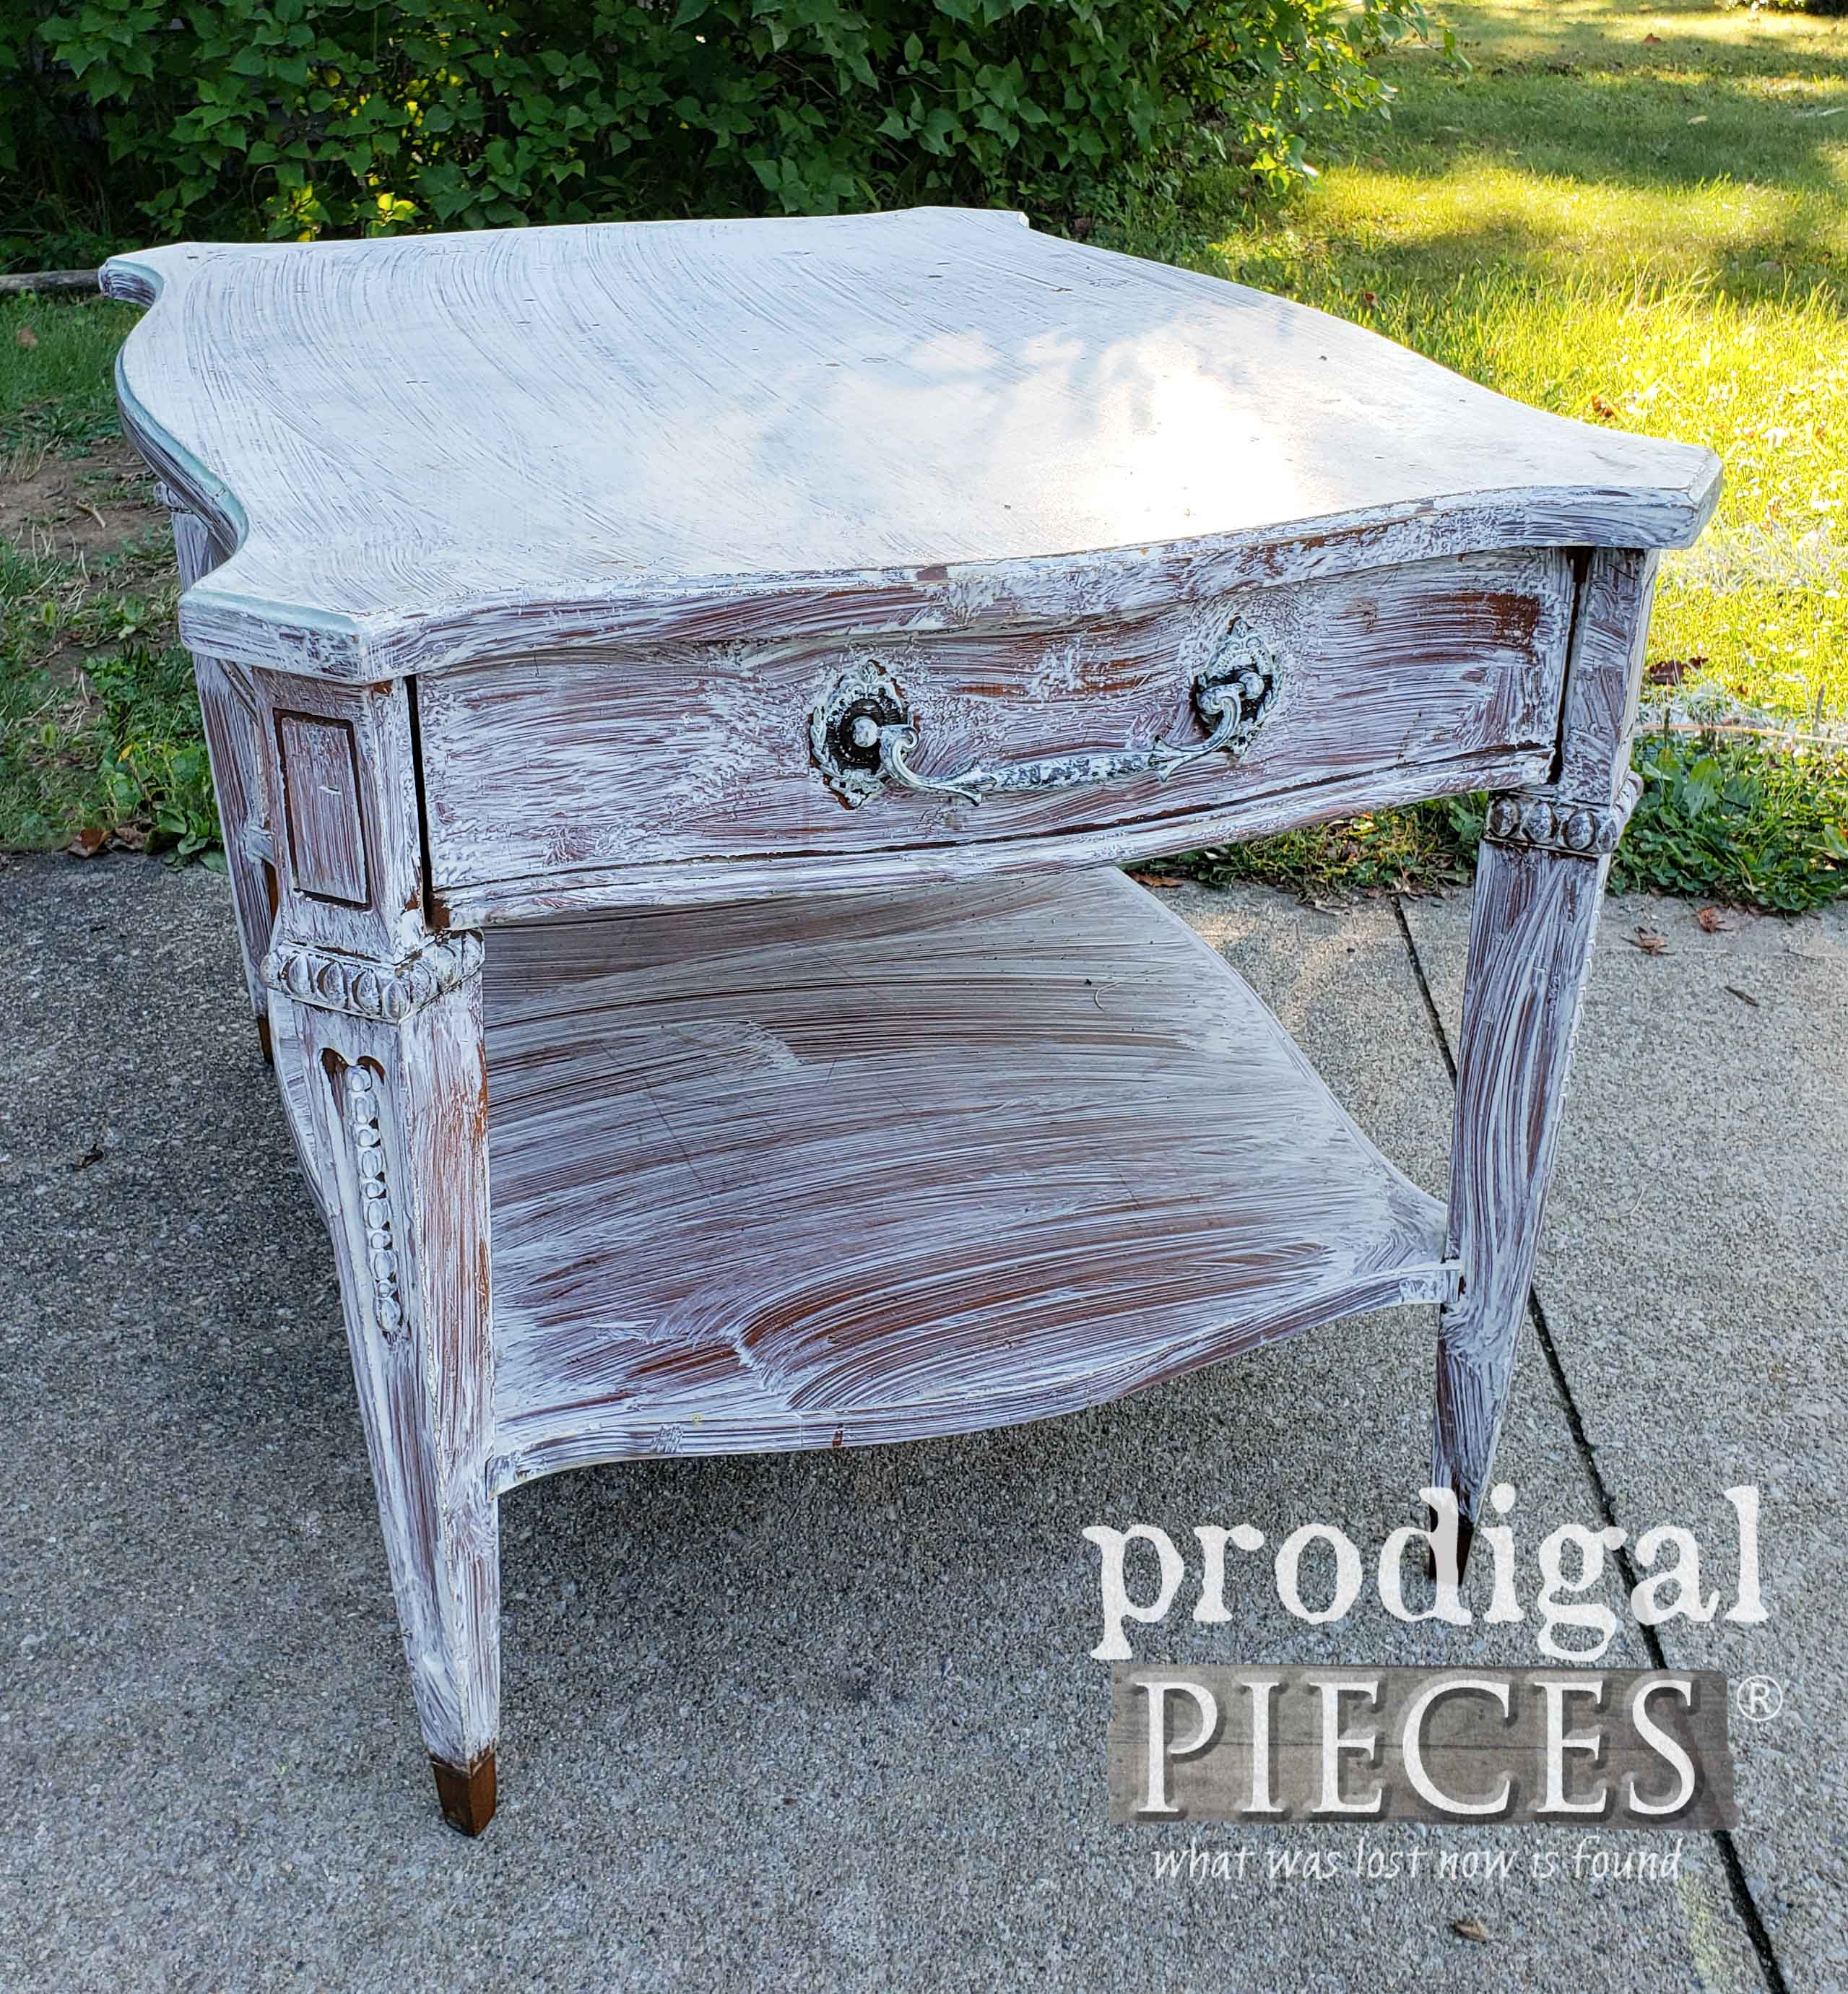 Vintage Side Table Before Makeover by Larissa of Prodigal Pieces | prodigalpieces.com